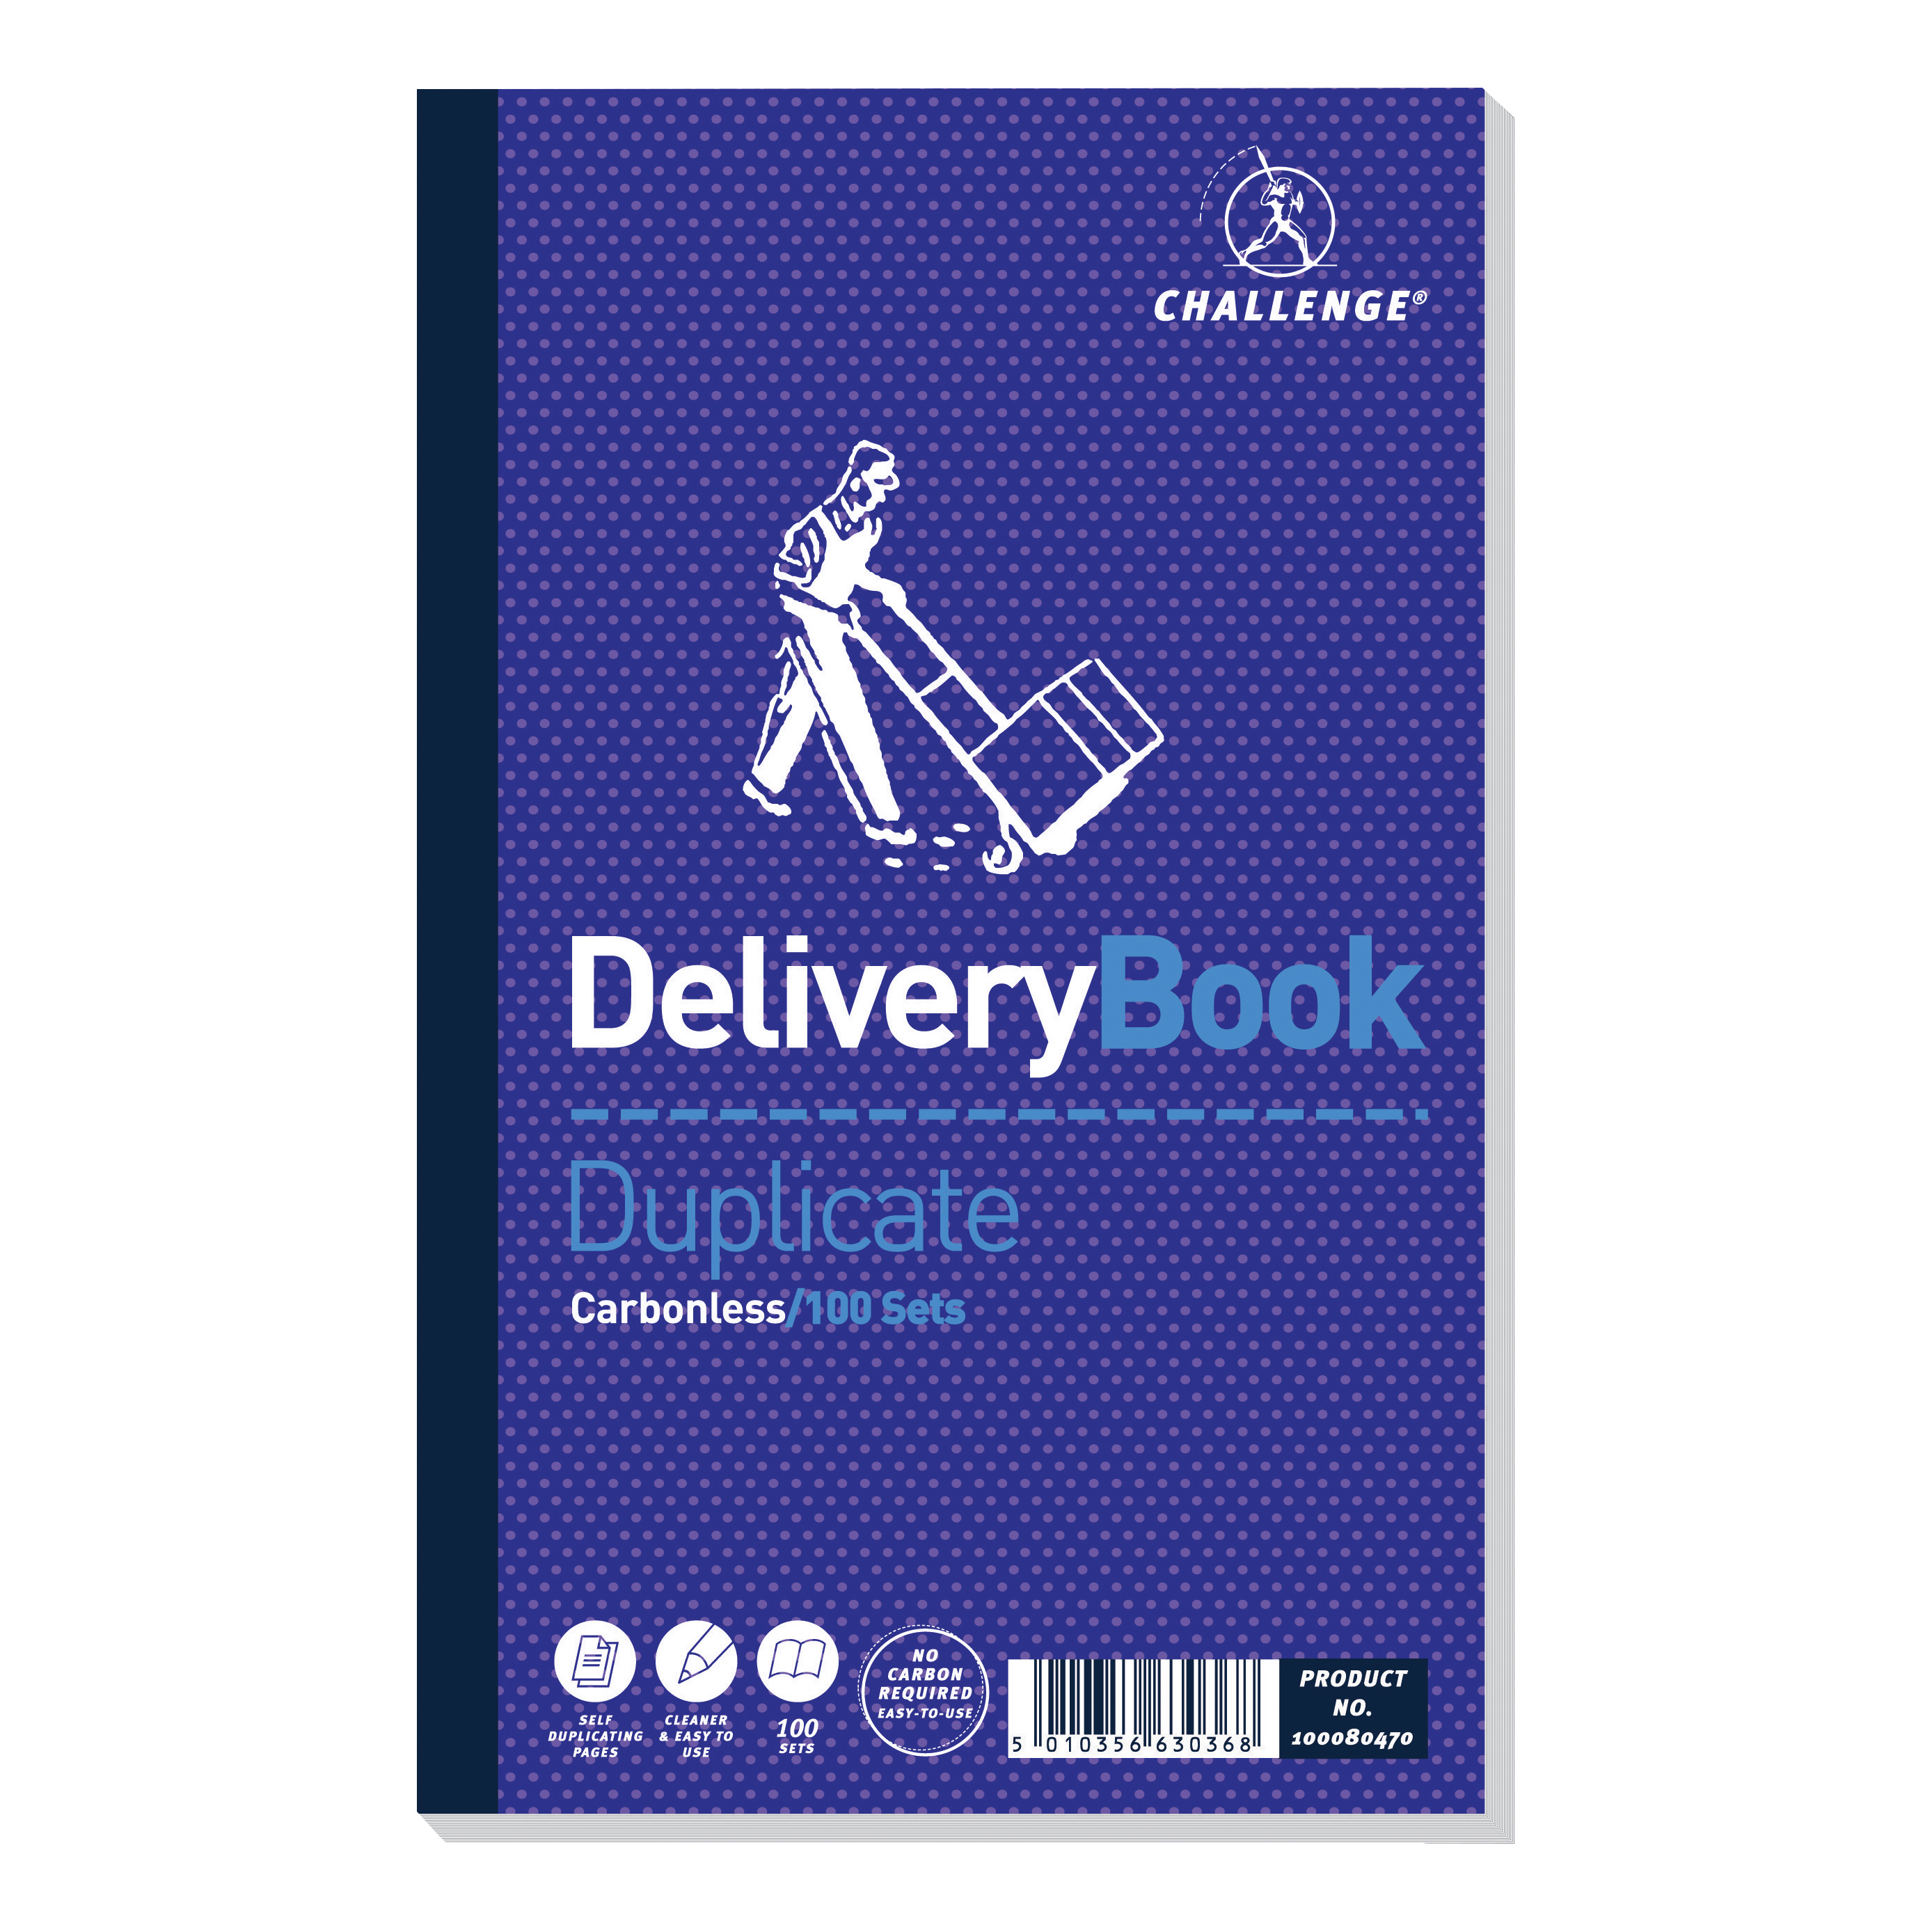 Challenge Duplicate Book Carbonless Delivery Book 100 Sets 210x130mm Ref 100080470 Pack 5